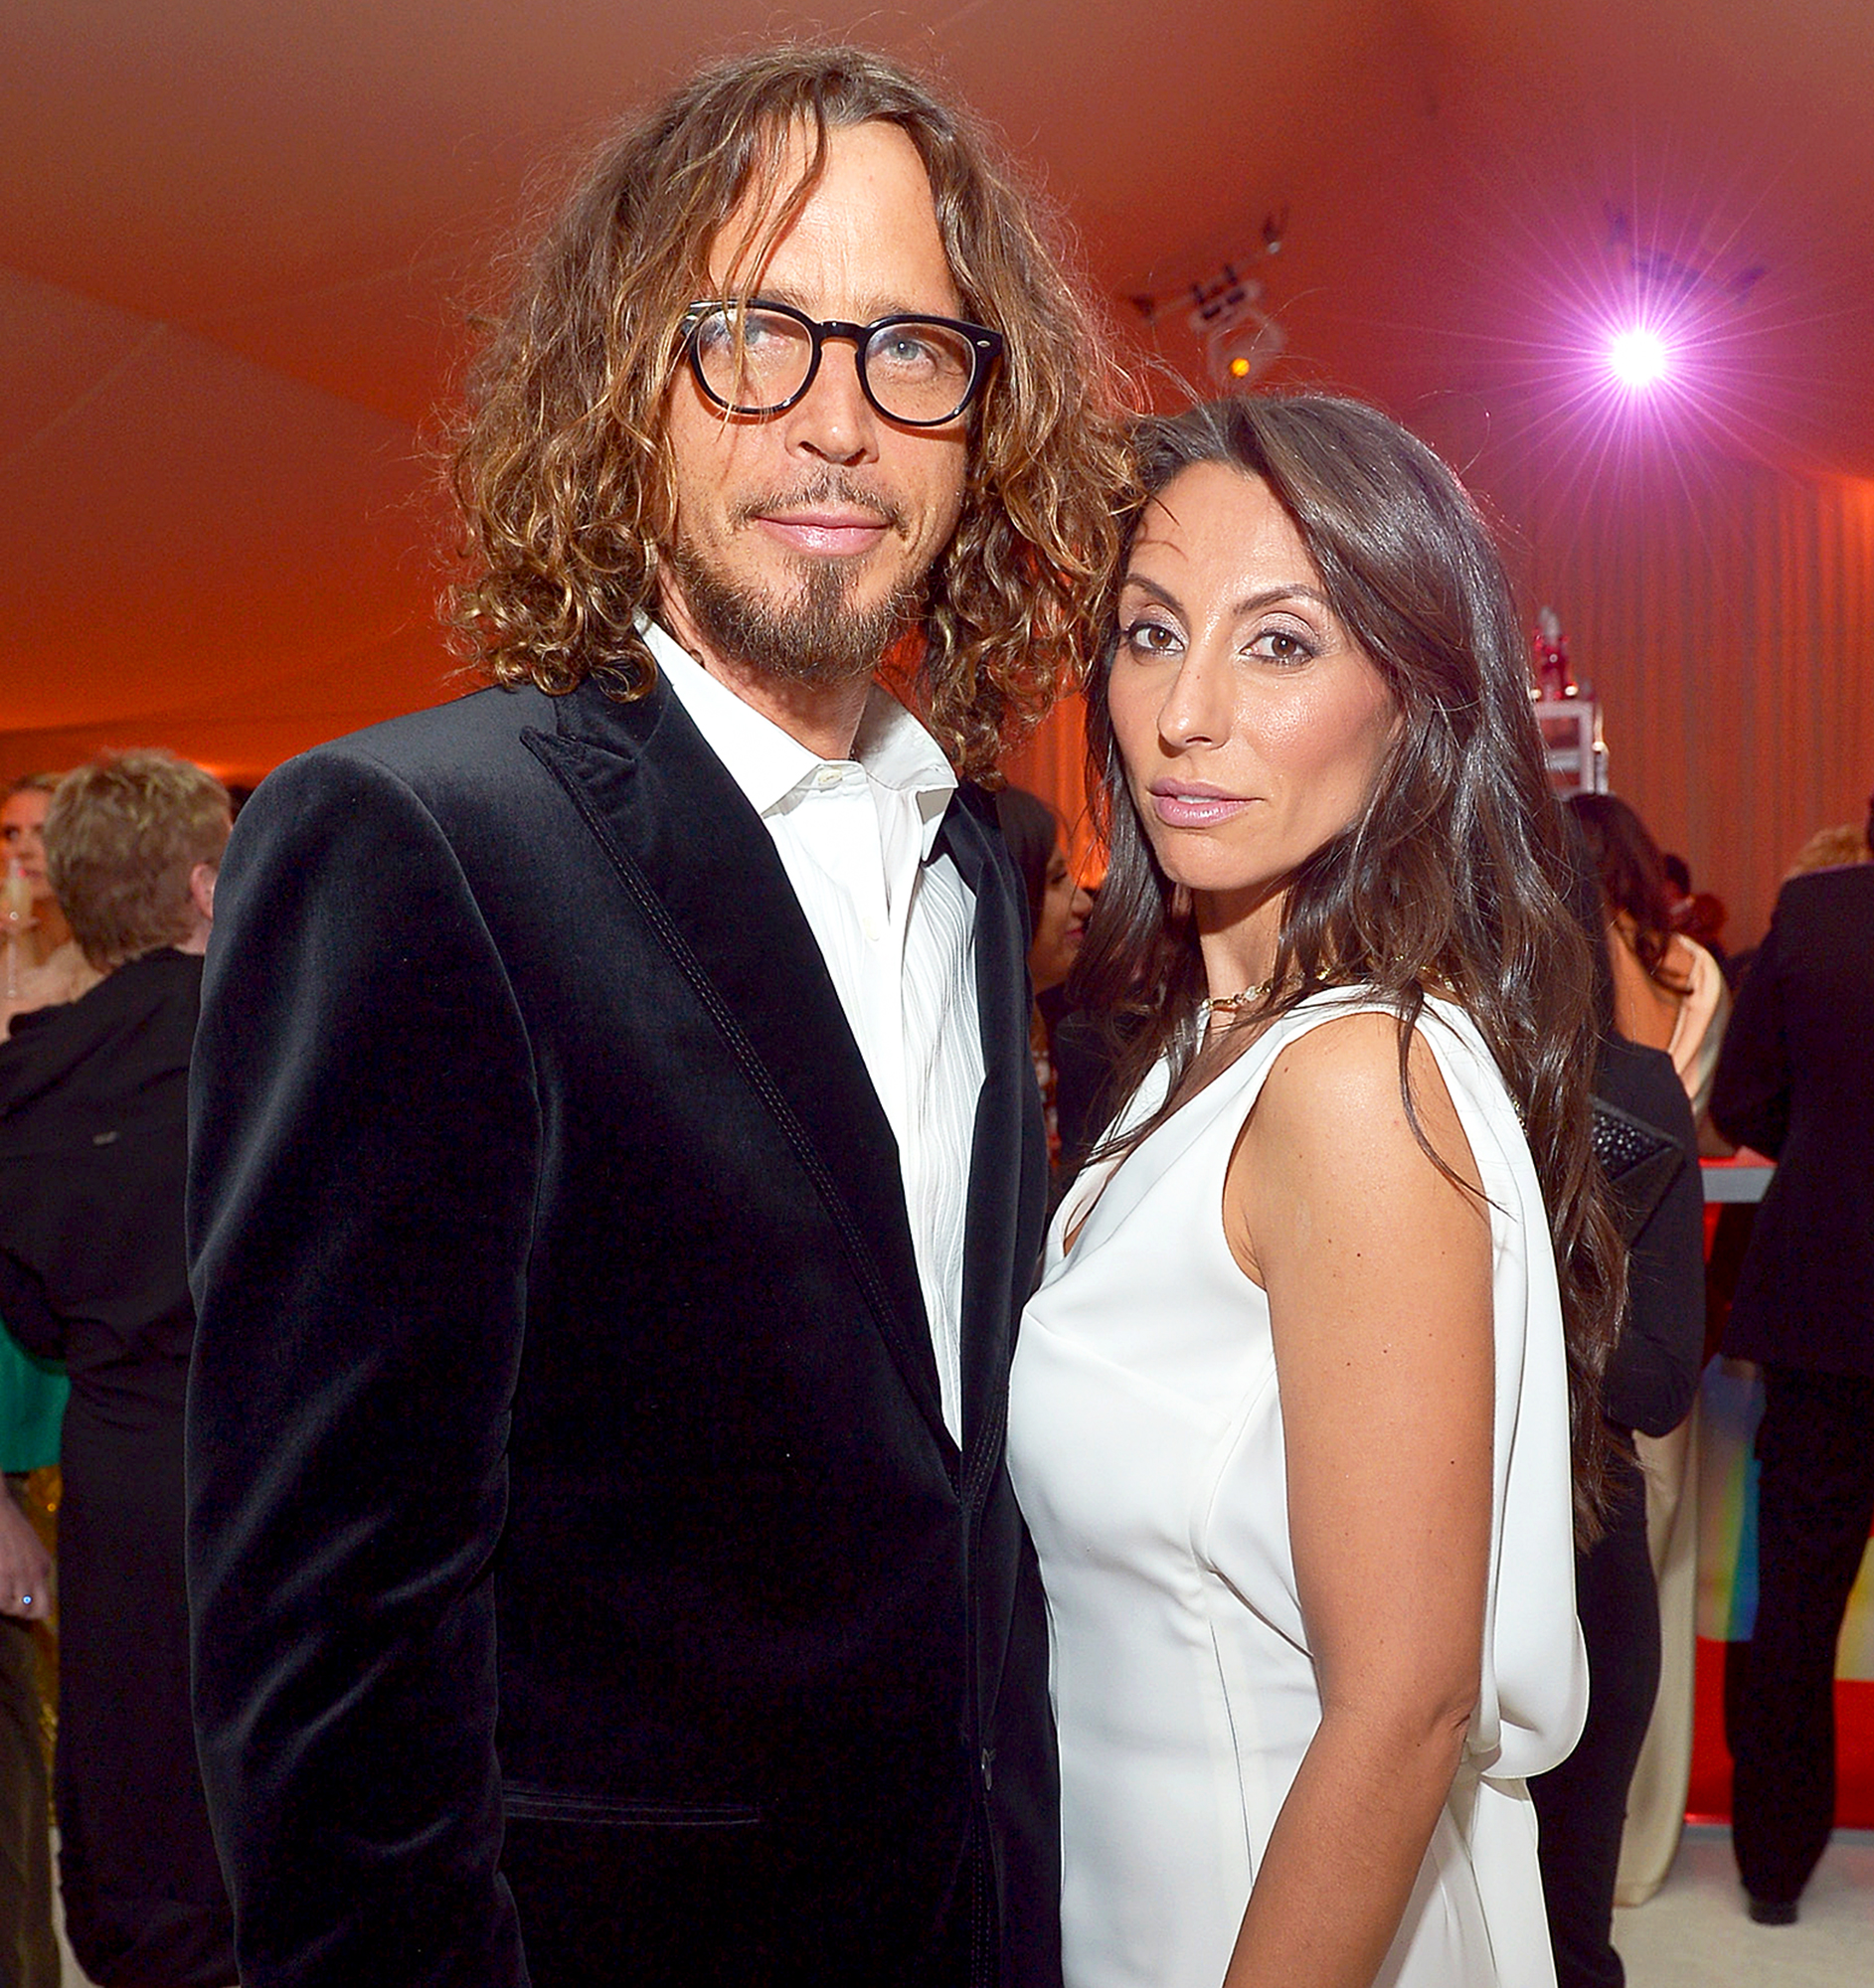 Chris Cornell's Widow Gives Heart-Wrenching First TV Interview Since His Death